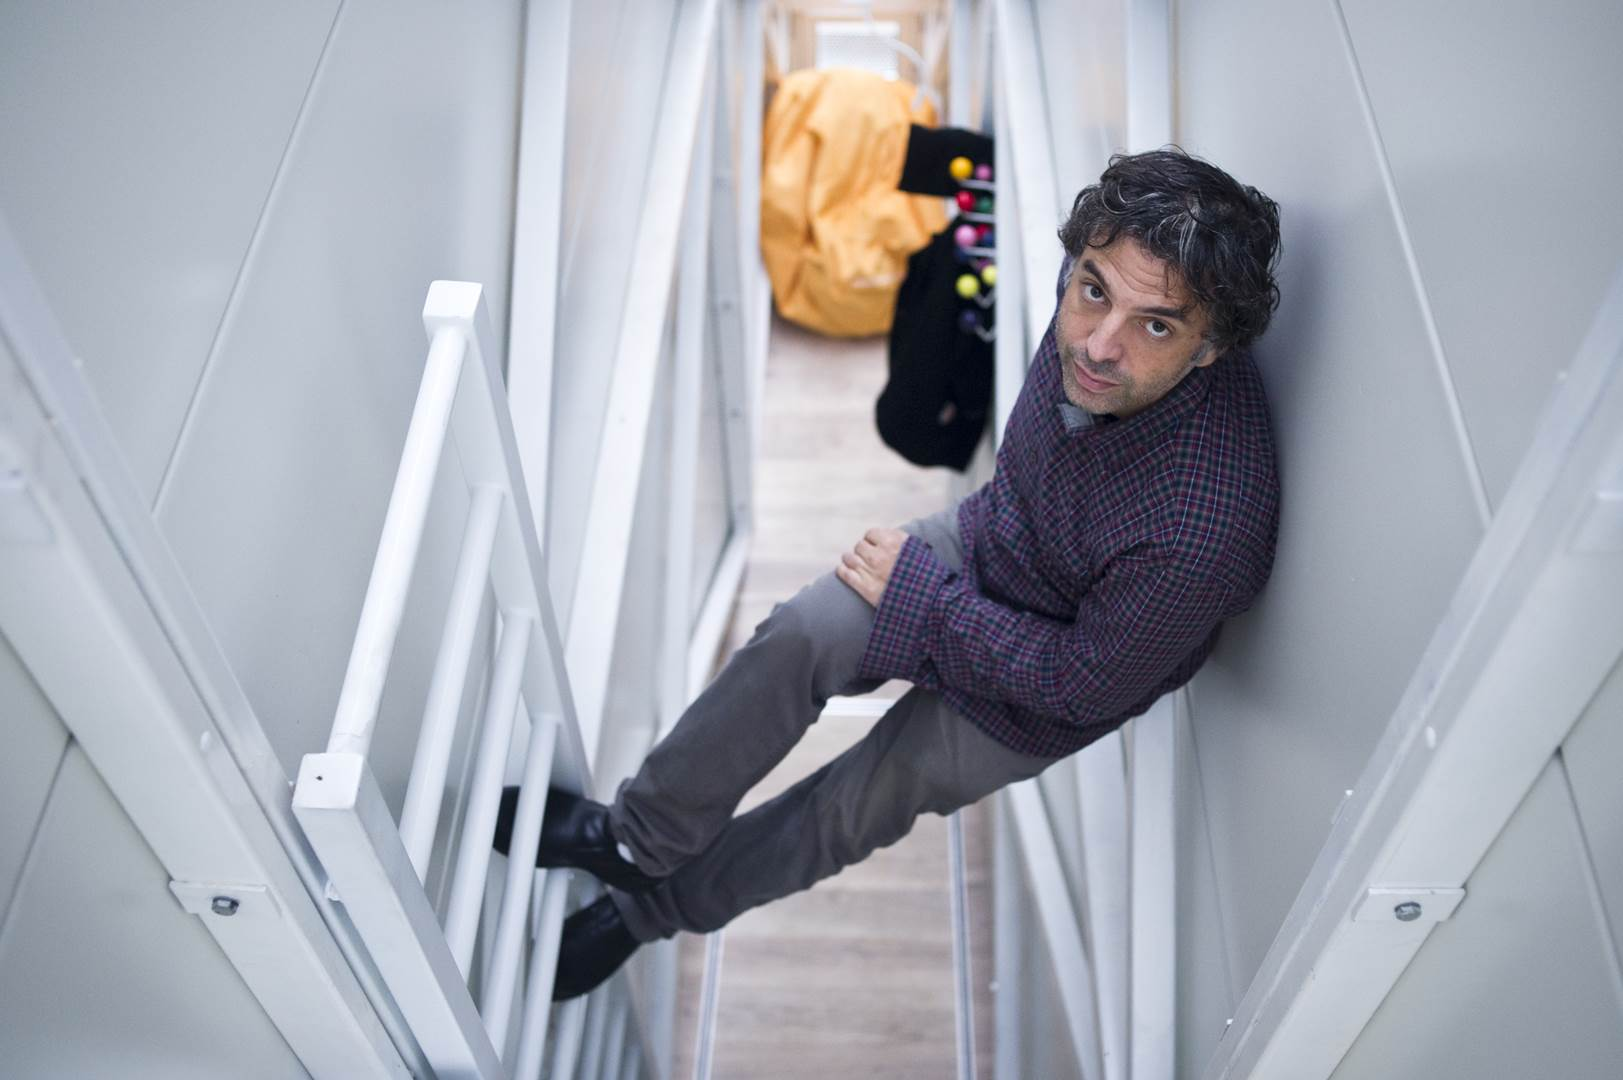 09. Etgar Keret in the Keret House, by Bartek Warzecha, © Polish Modern Art Foundation (Copy)